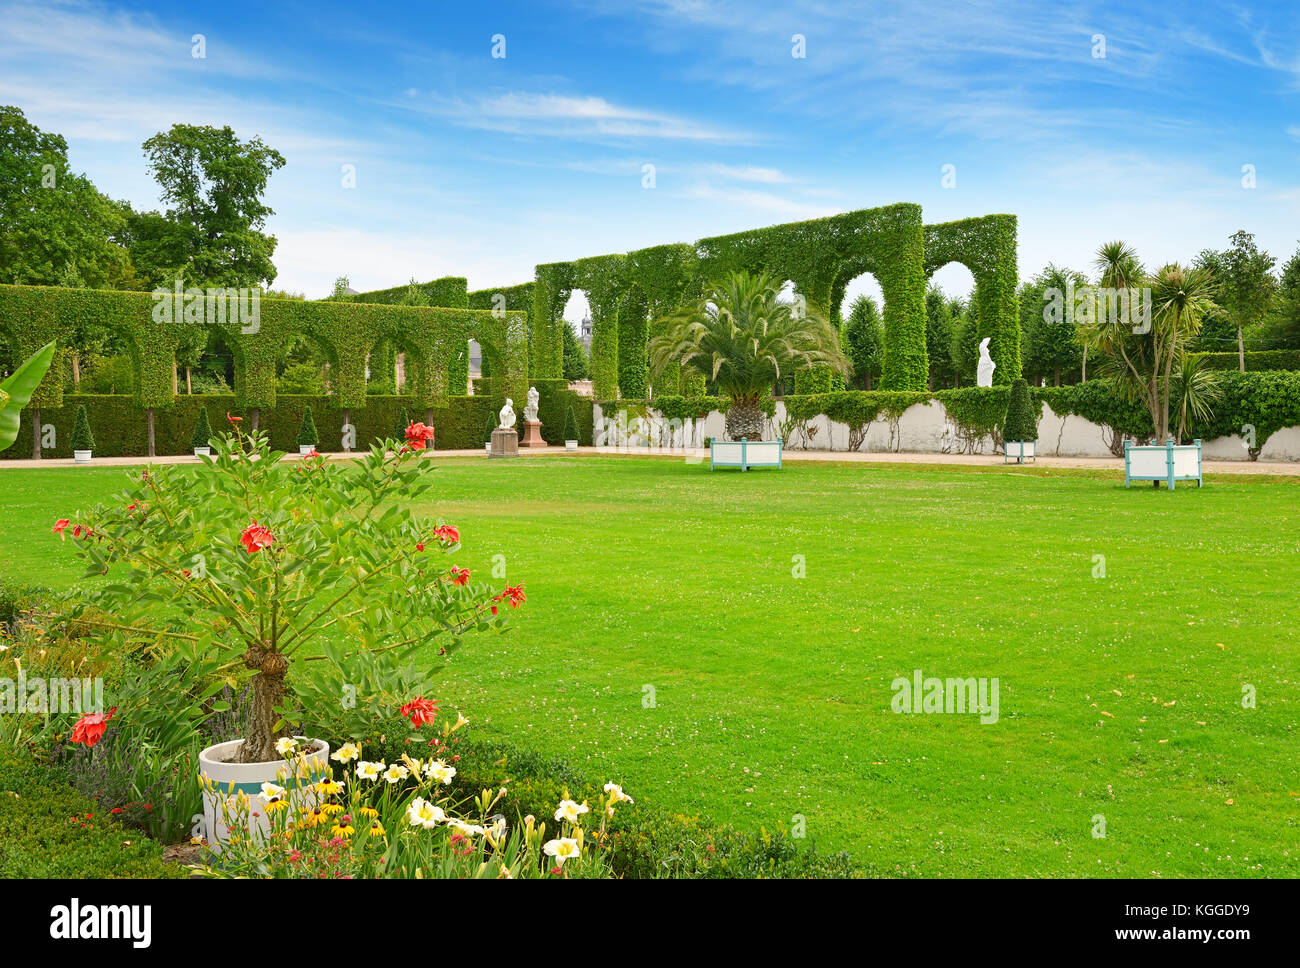 Beautiful glade in the city park of Schwetzingen, Germany. - Stock Image